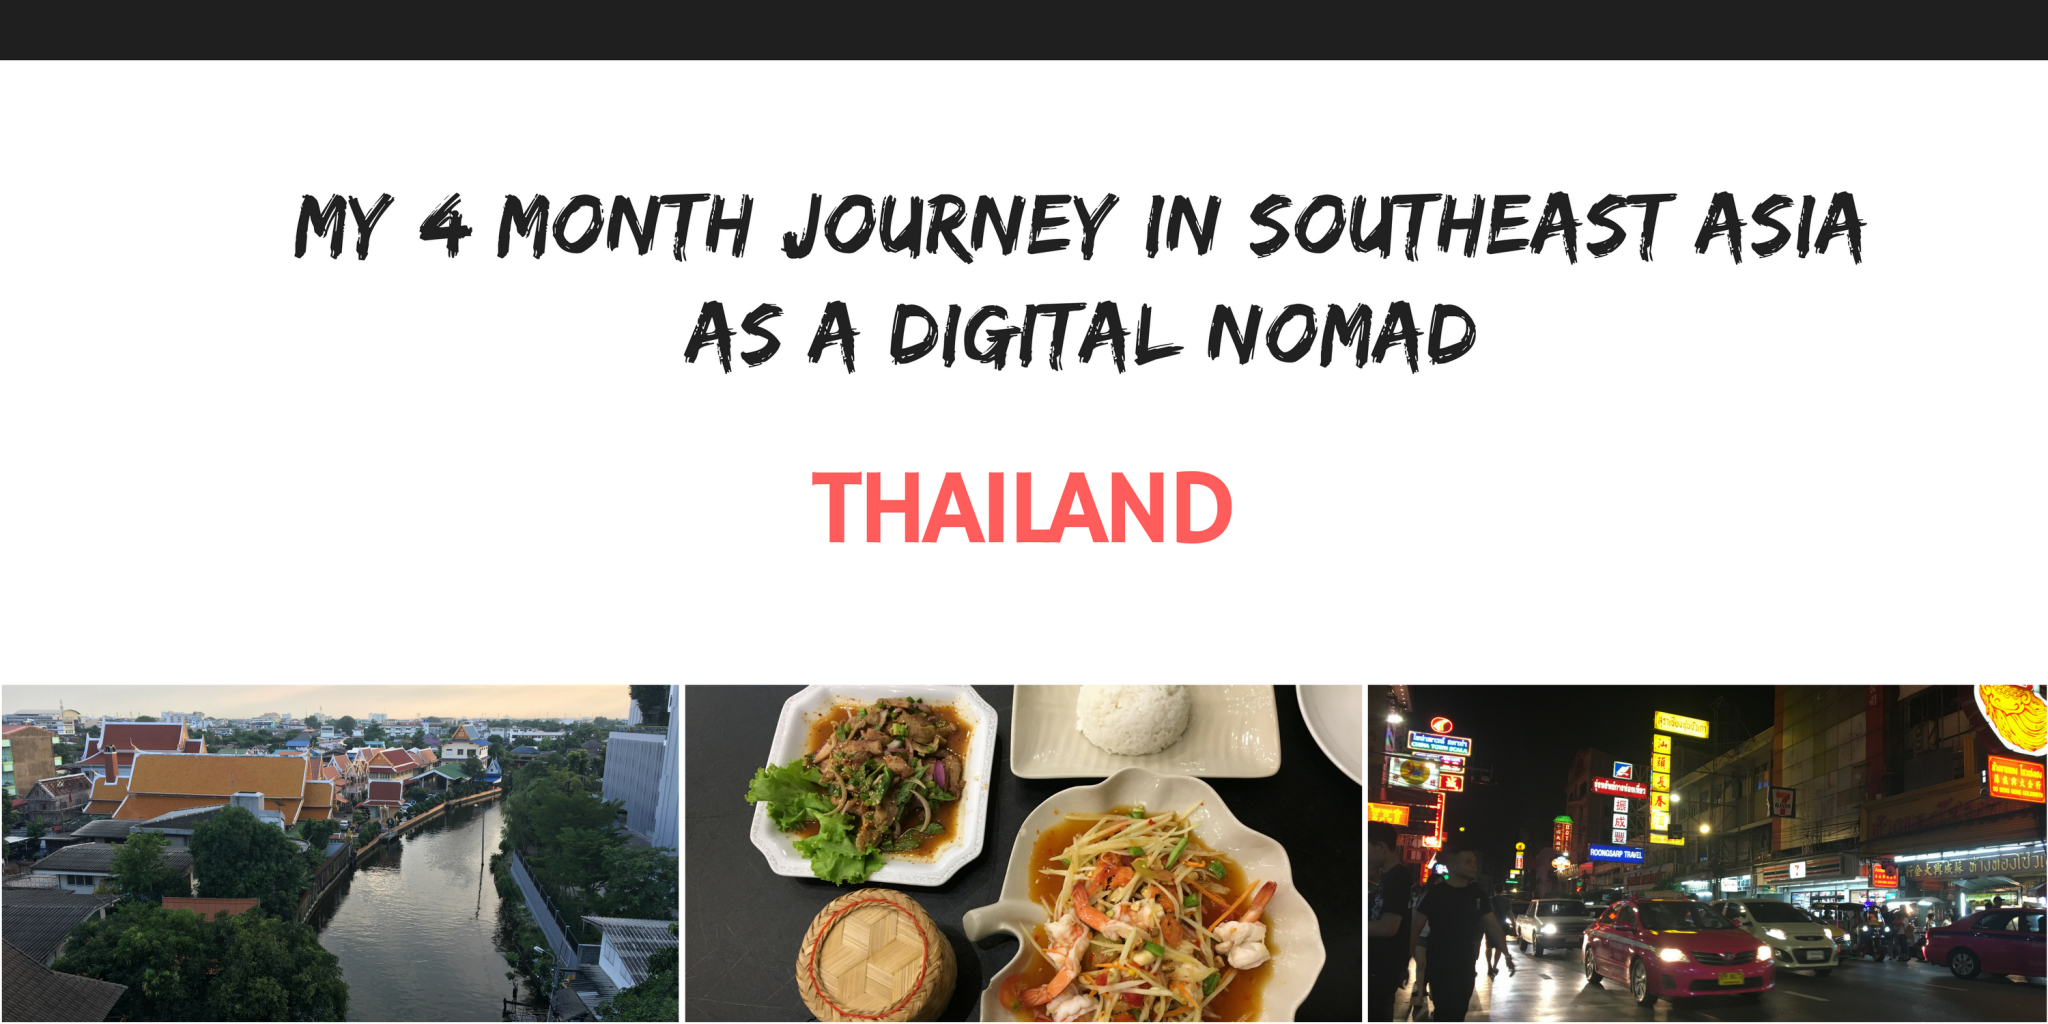 My 4 month Journey in Southeast Asia as a Digital Nomad:Thailand